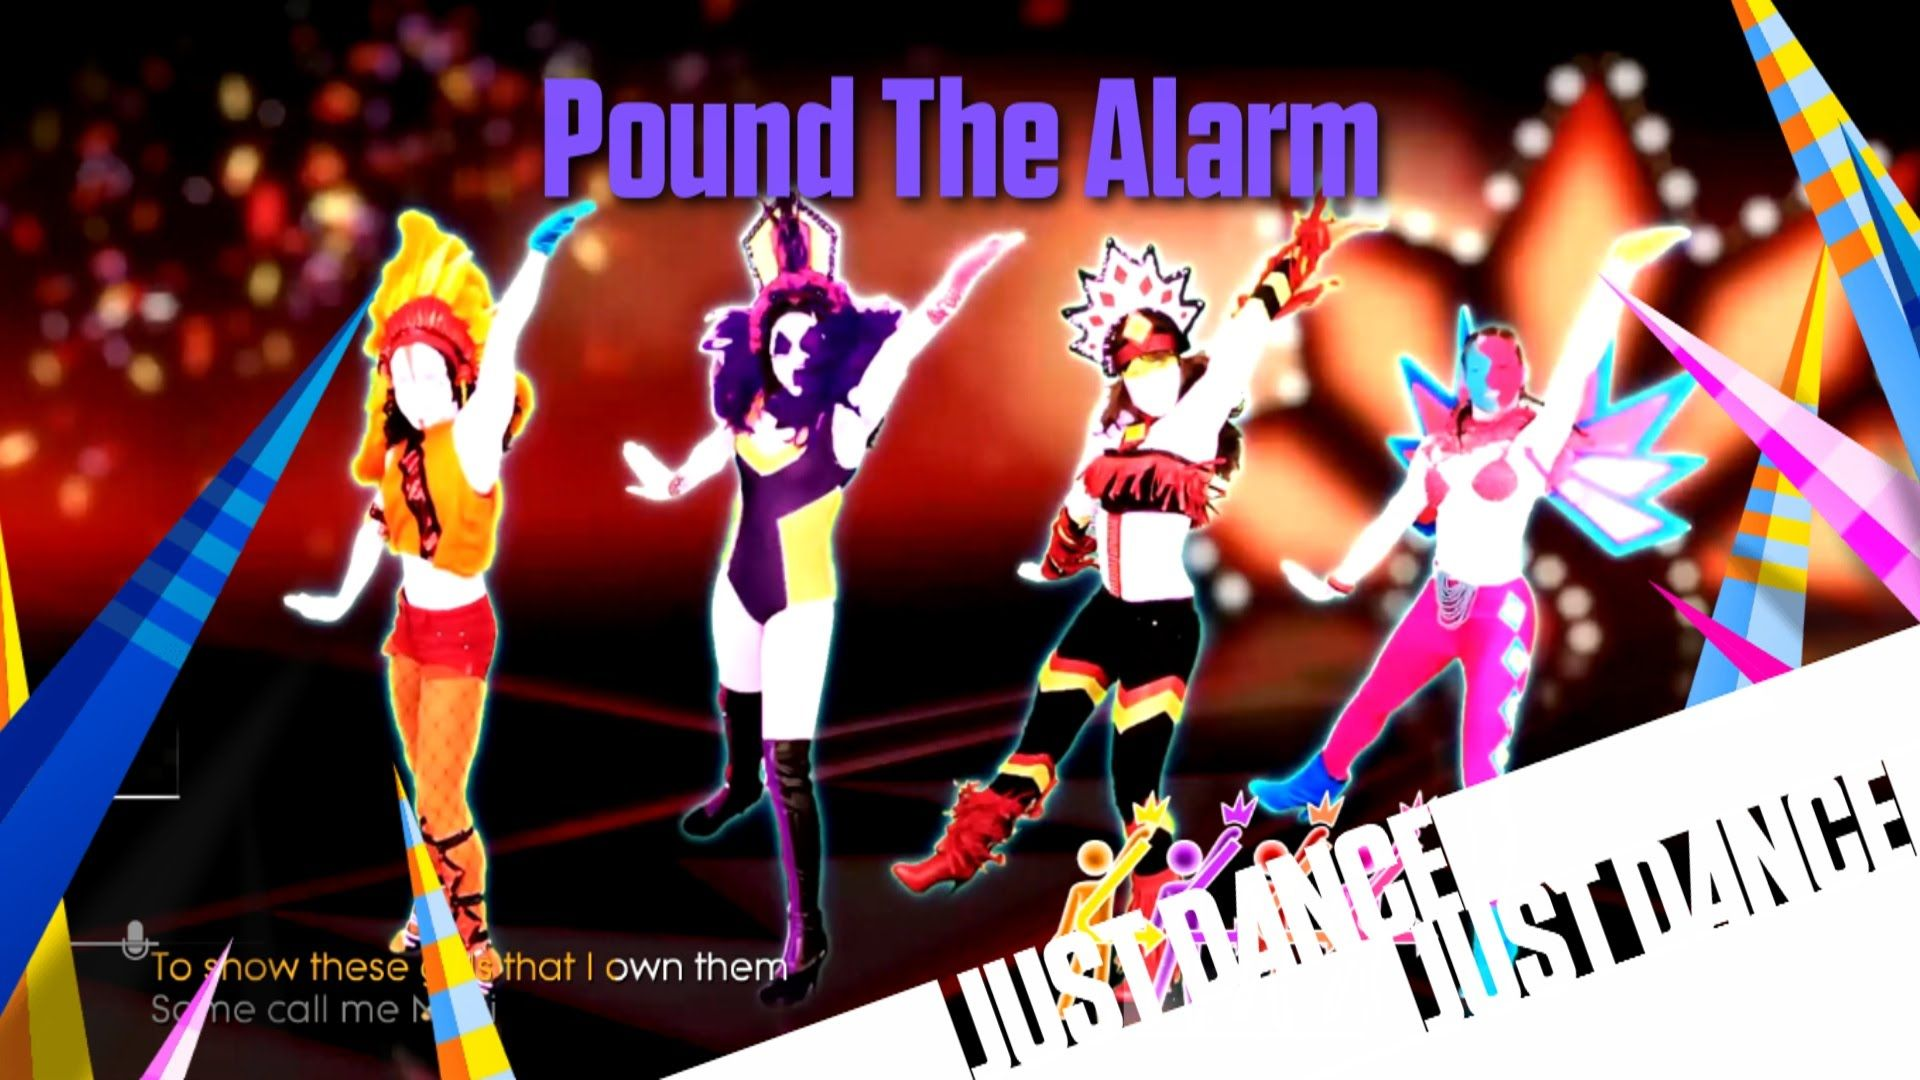 Just Dance Unlimited - Pound The Alarm | Just dance 4-2018 | Just